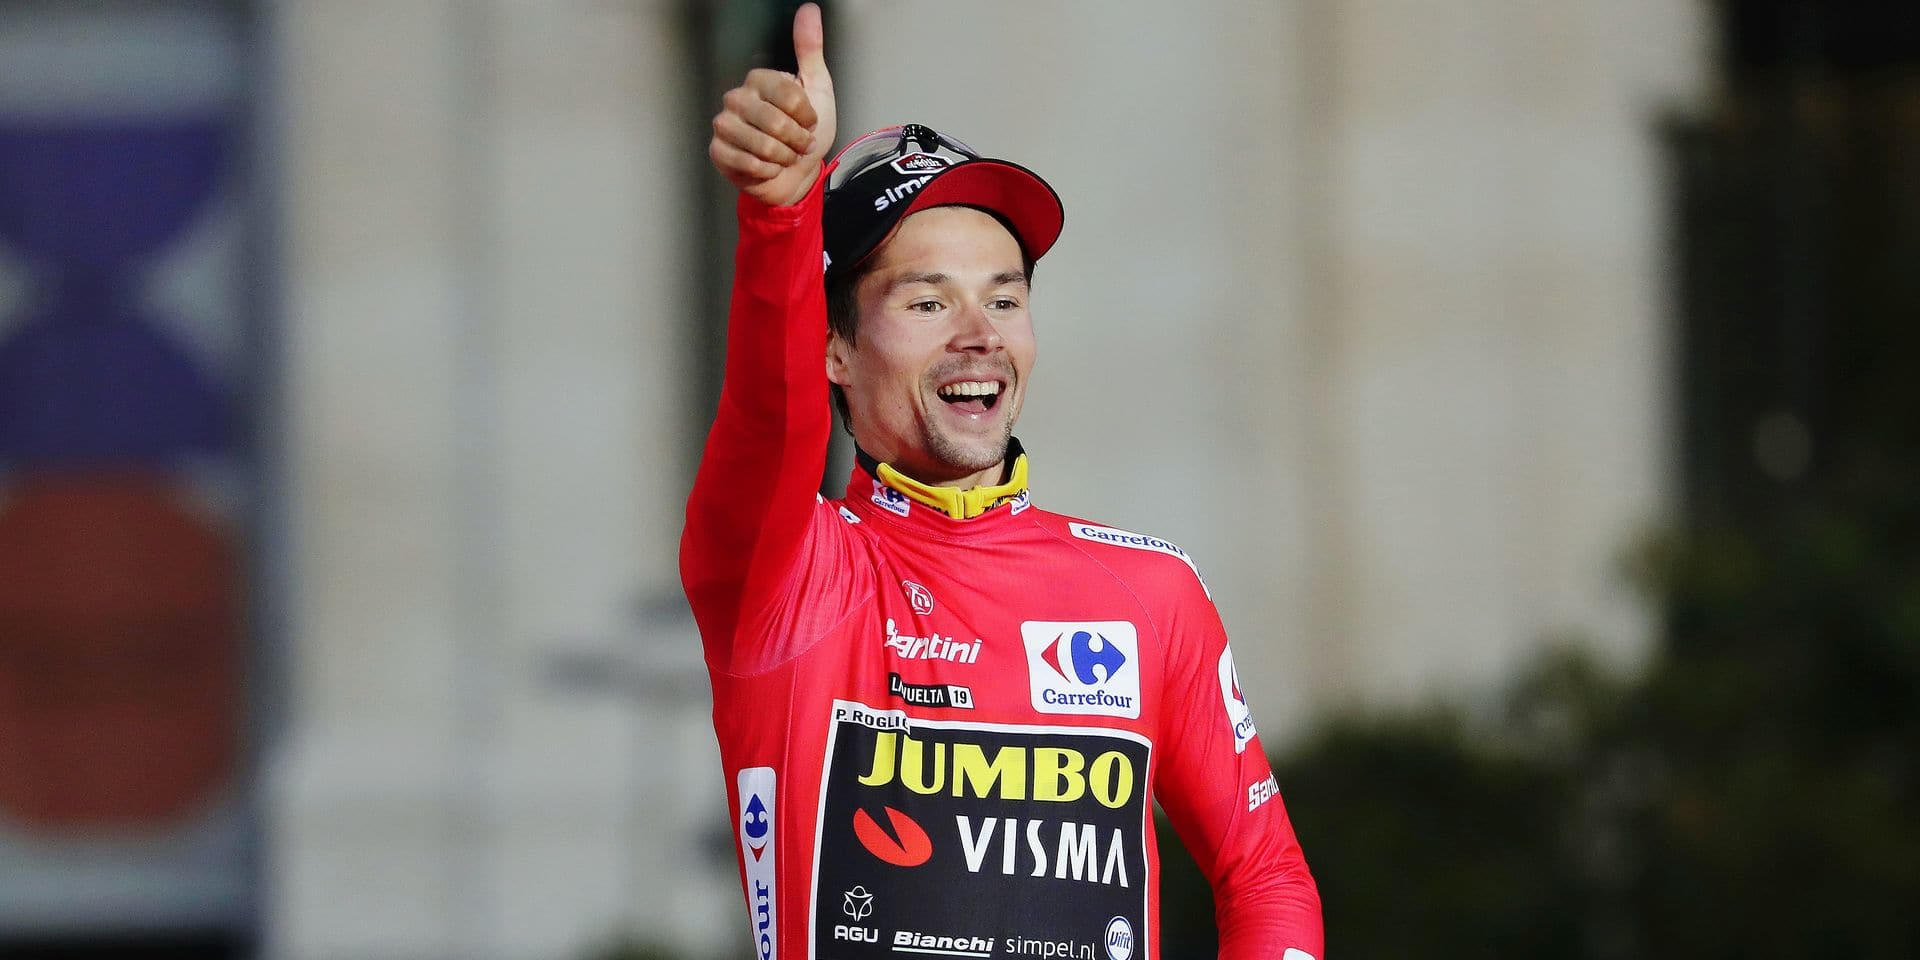 Primoz Roglic celebrates on the podium after winning La Vuelta cycling race in Madrid, Spain, Sunday, Sept. 15, 2019. (AP Photo/Manu Fernandez)